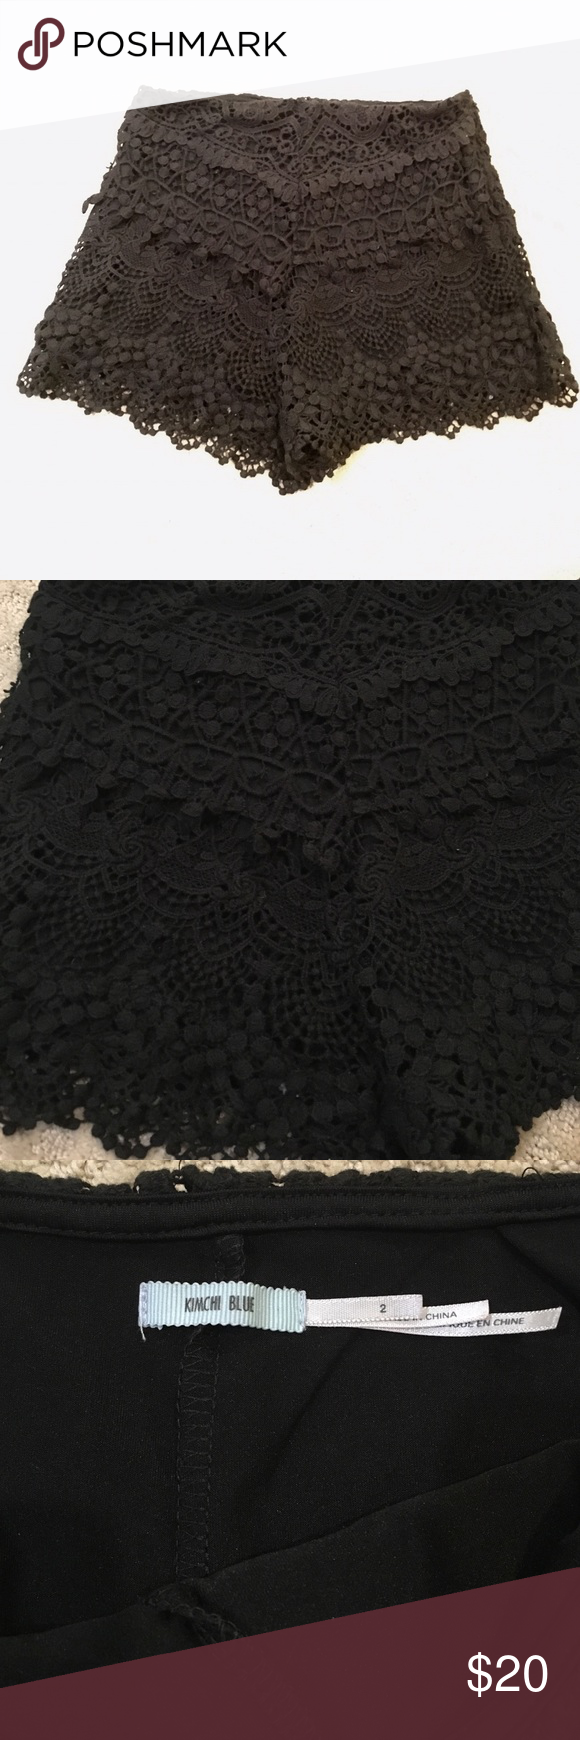 UO crochet shorts Tight fitting crochet shorts in great condition!! Urban Outfitters Shorts